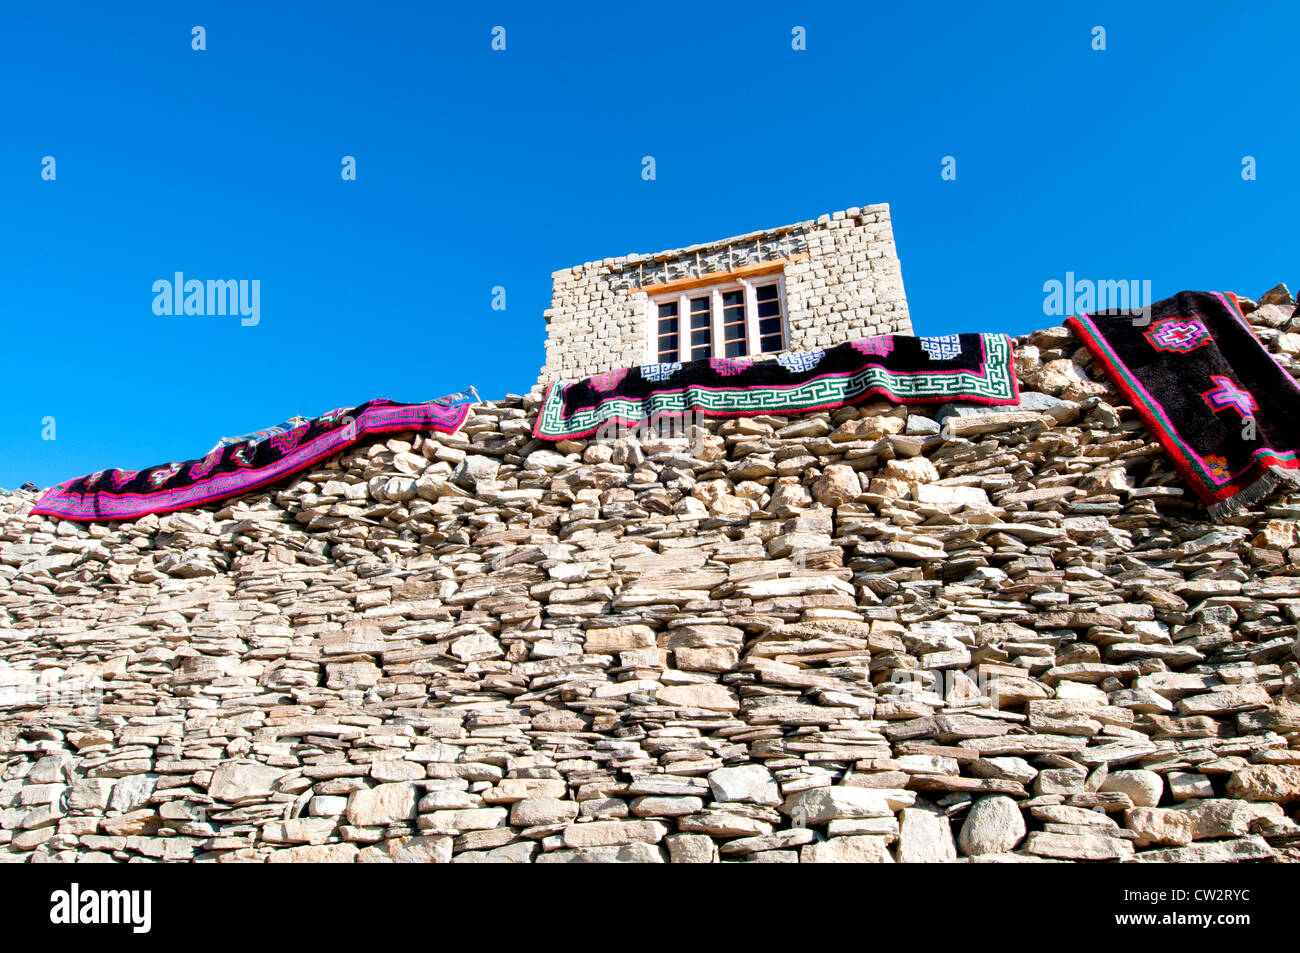 Three colorful patterned rugs hanging over a handmade stone wall with a house above in the village of Korzok, Ladakh, - Stock Image